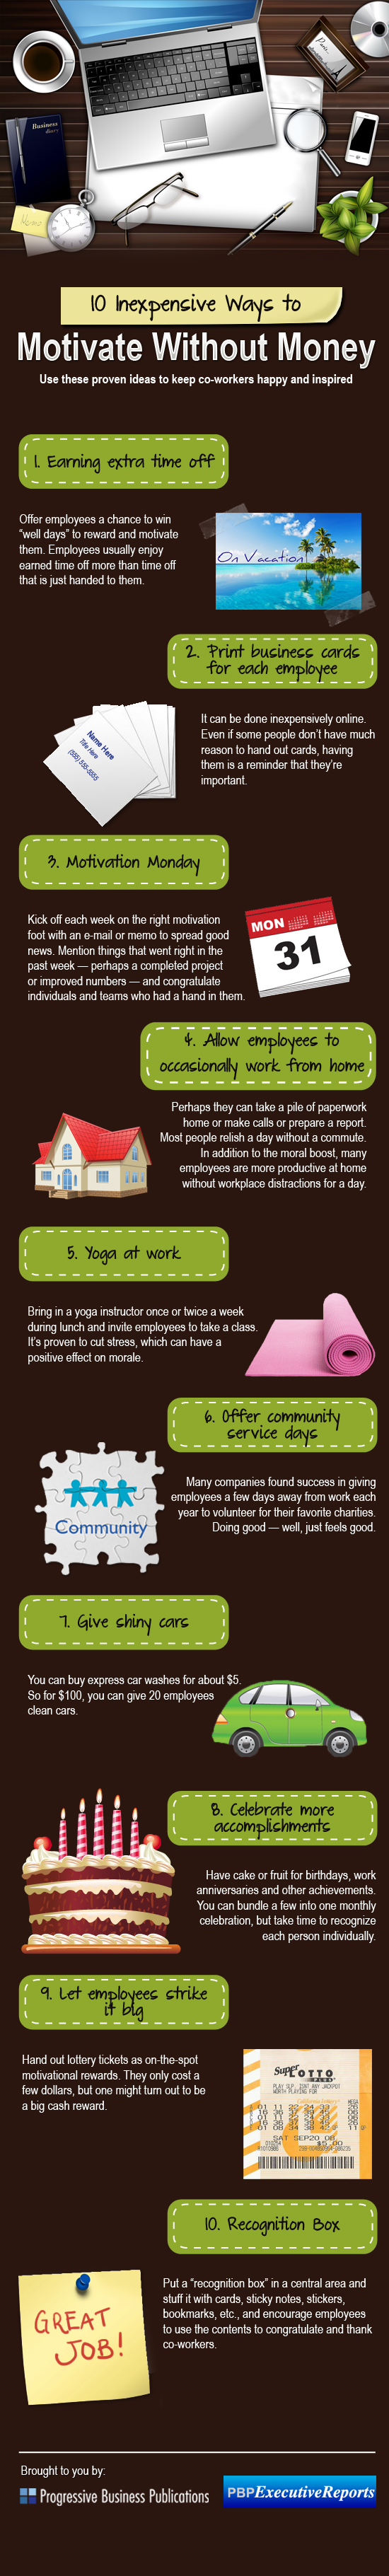 Motivate-without-Money-Infographic